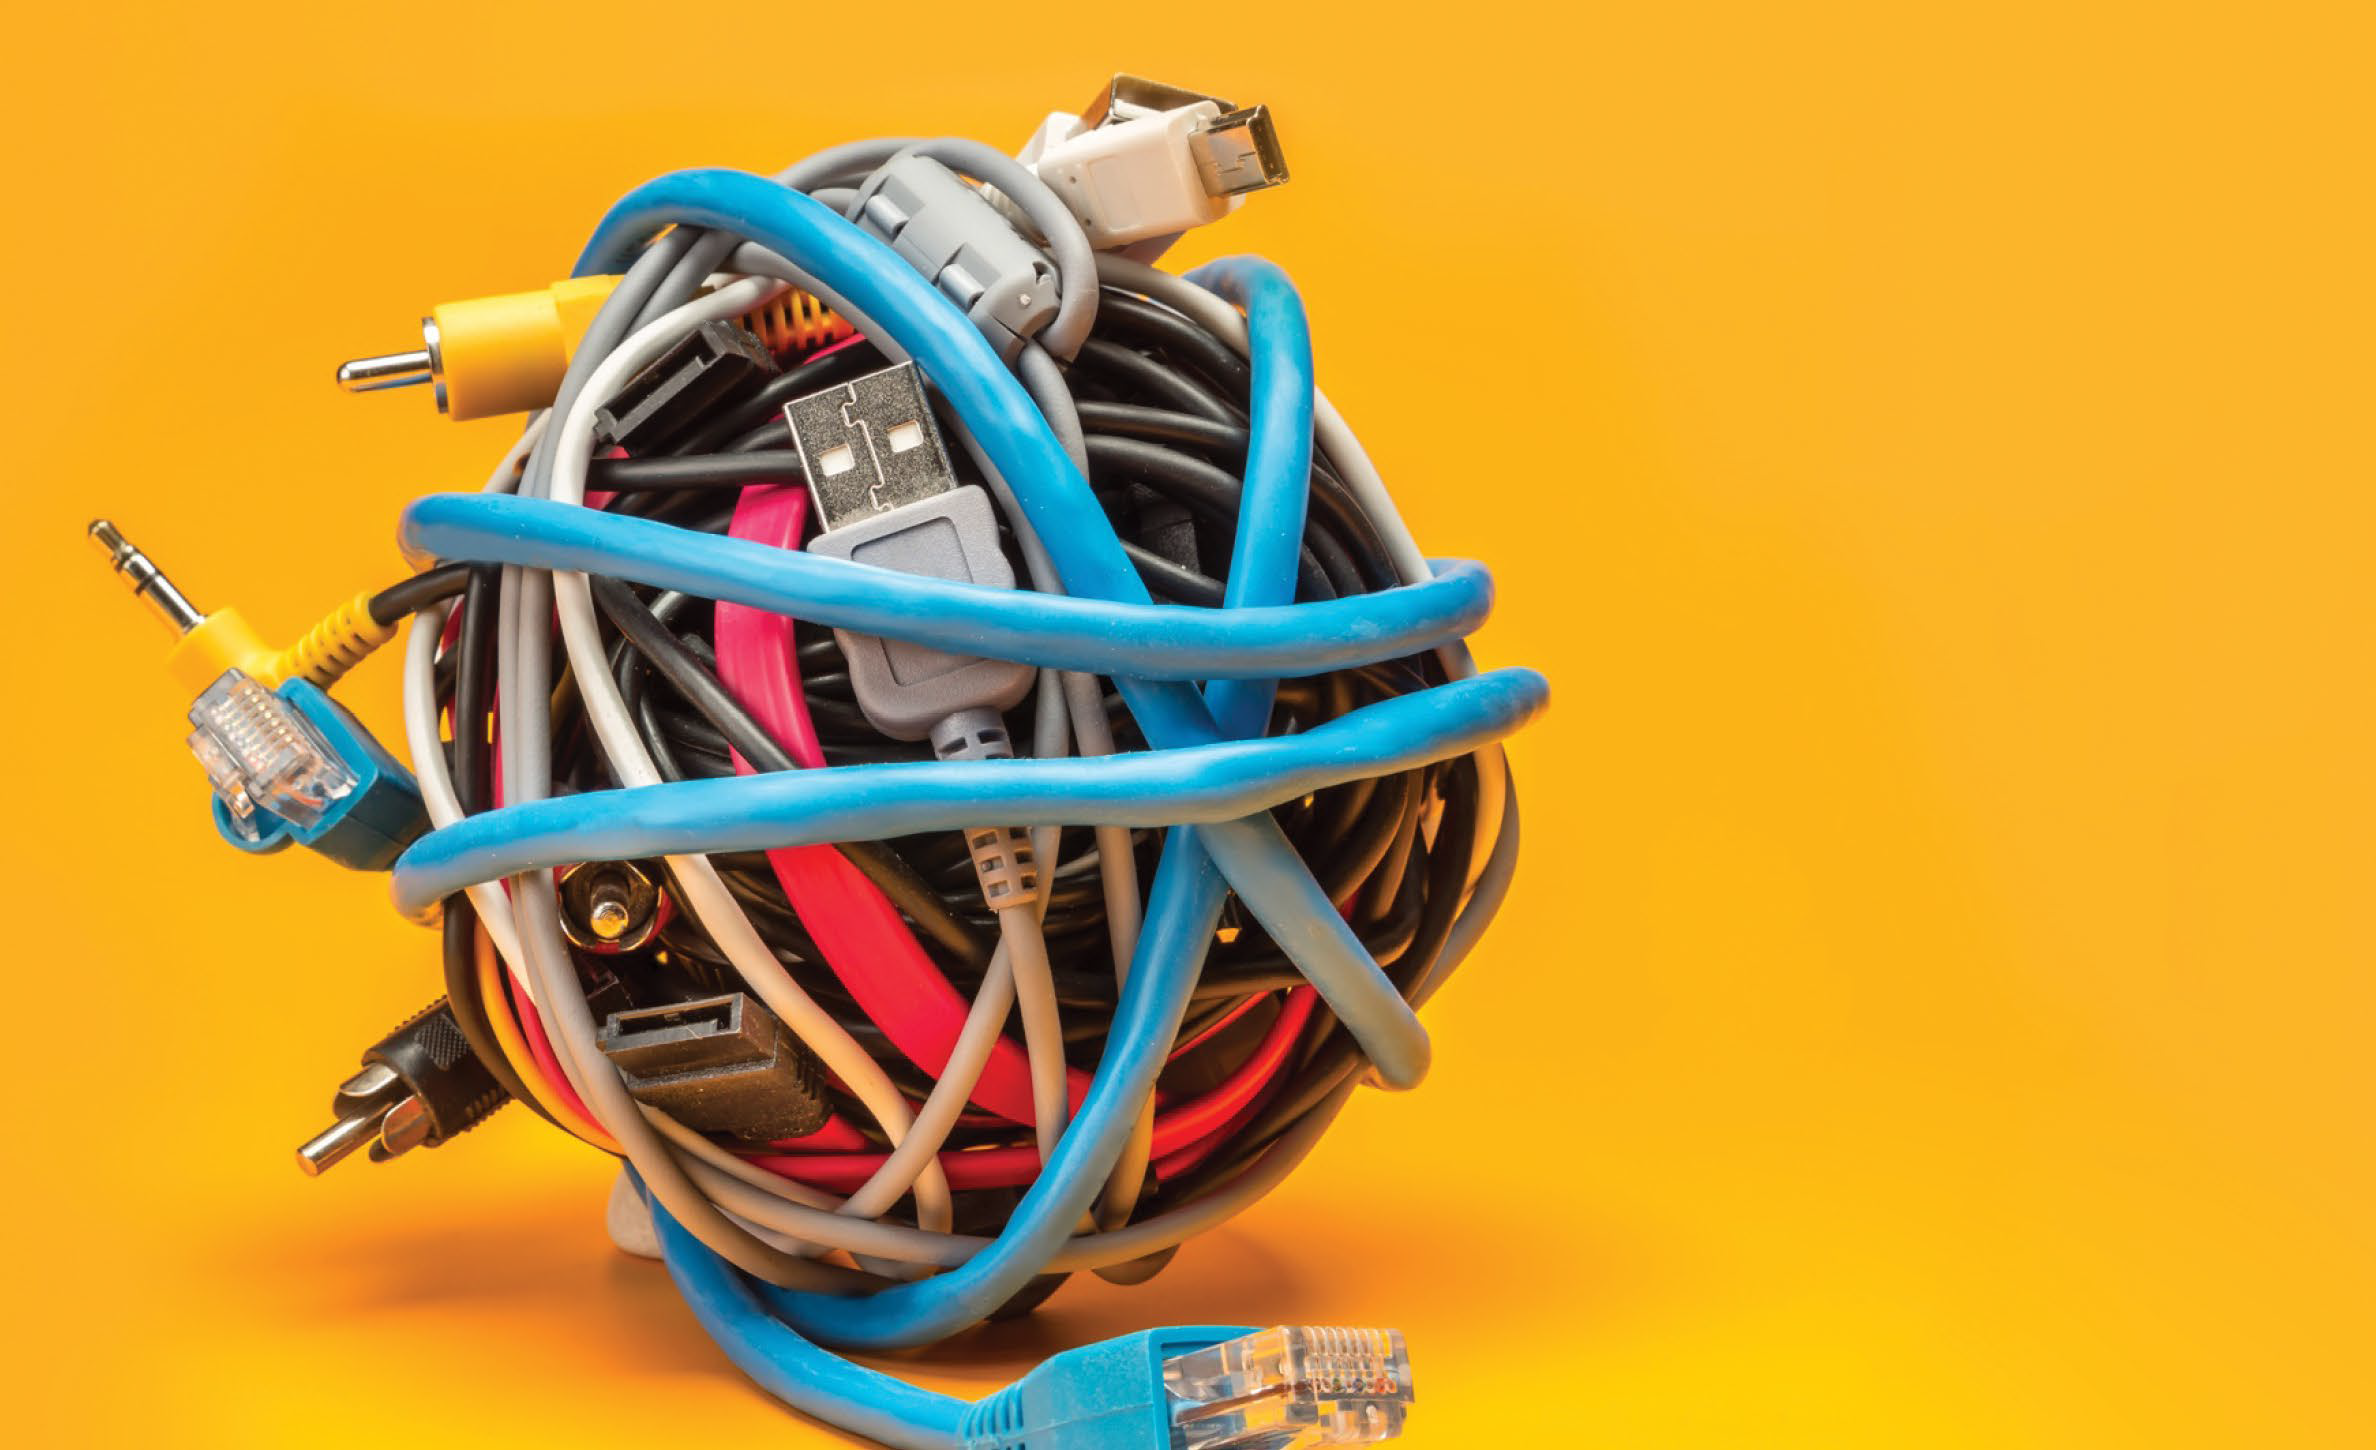 tangled ball of computer cables